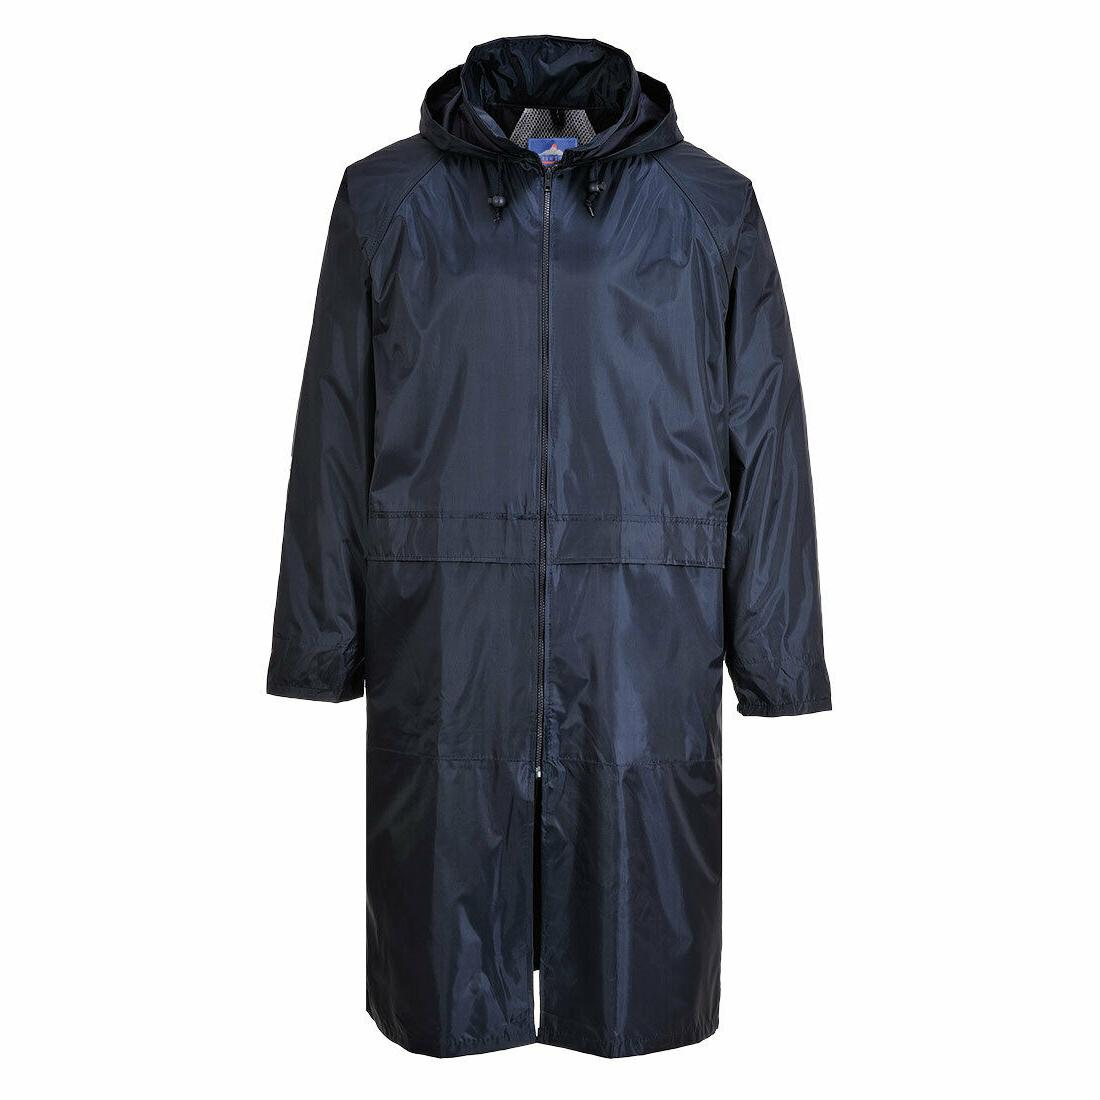 Portwest S438 Classic Adult Long Waterproof Rain Coat Jacket